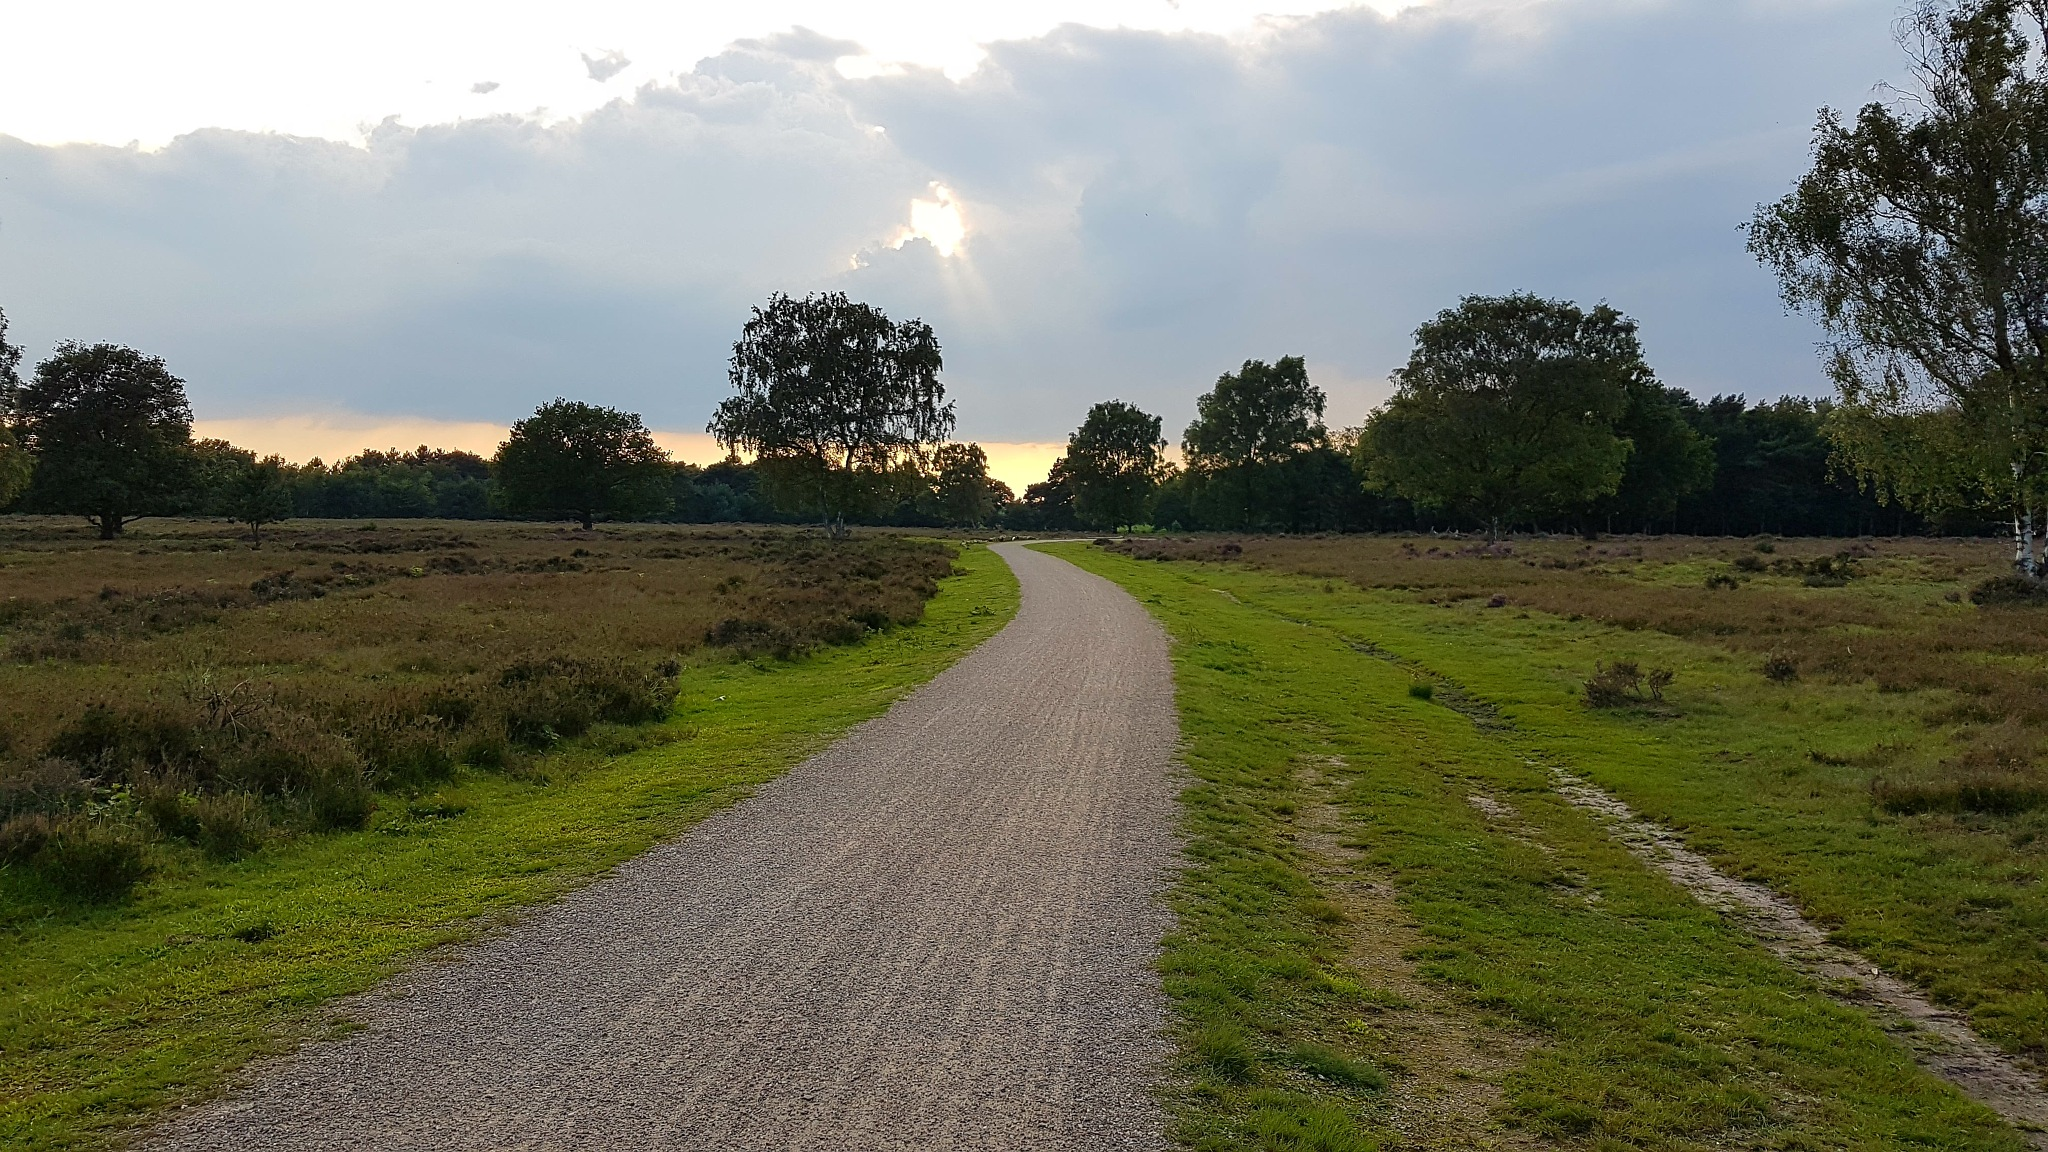 The beauty of a simple road in nature - The Netherlands  by Orhan Polat Projectmanagement